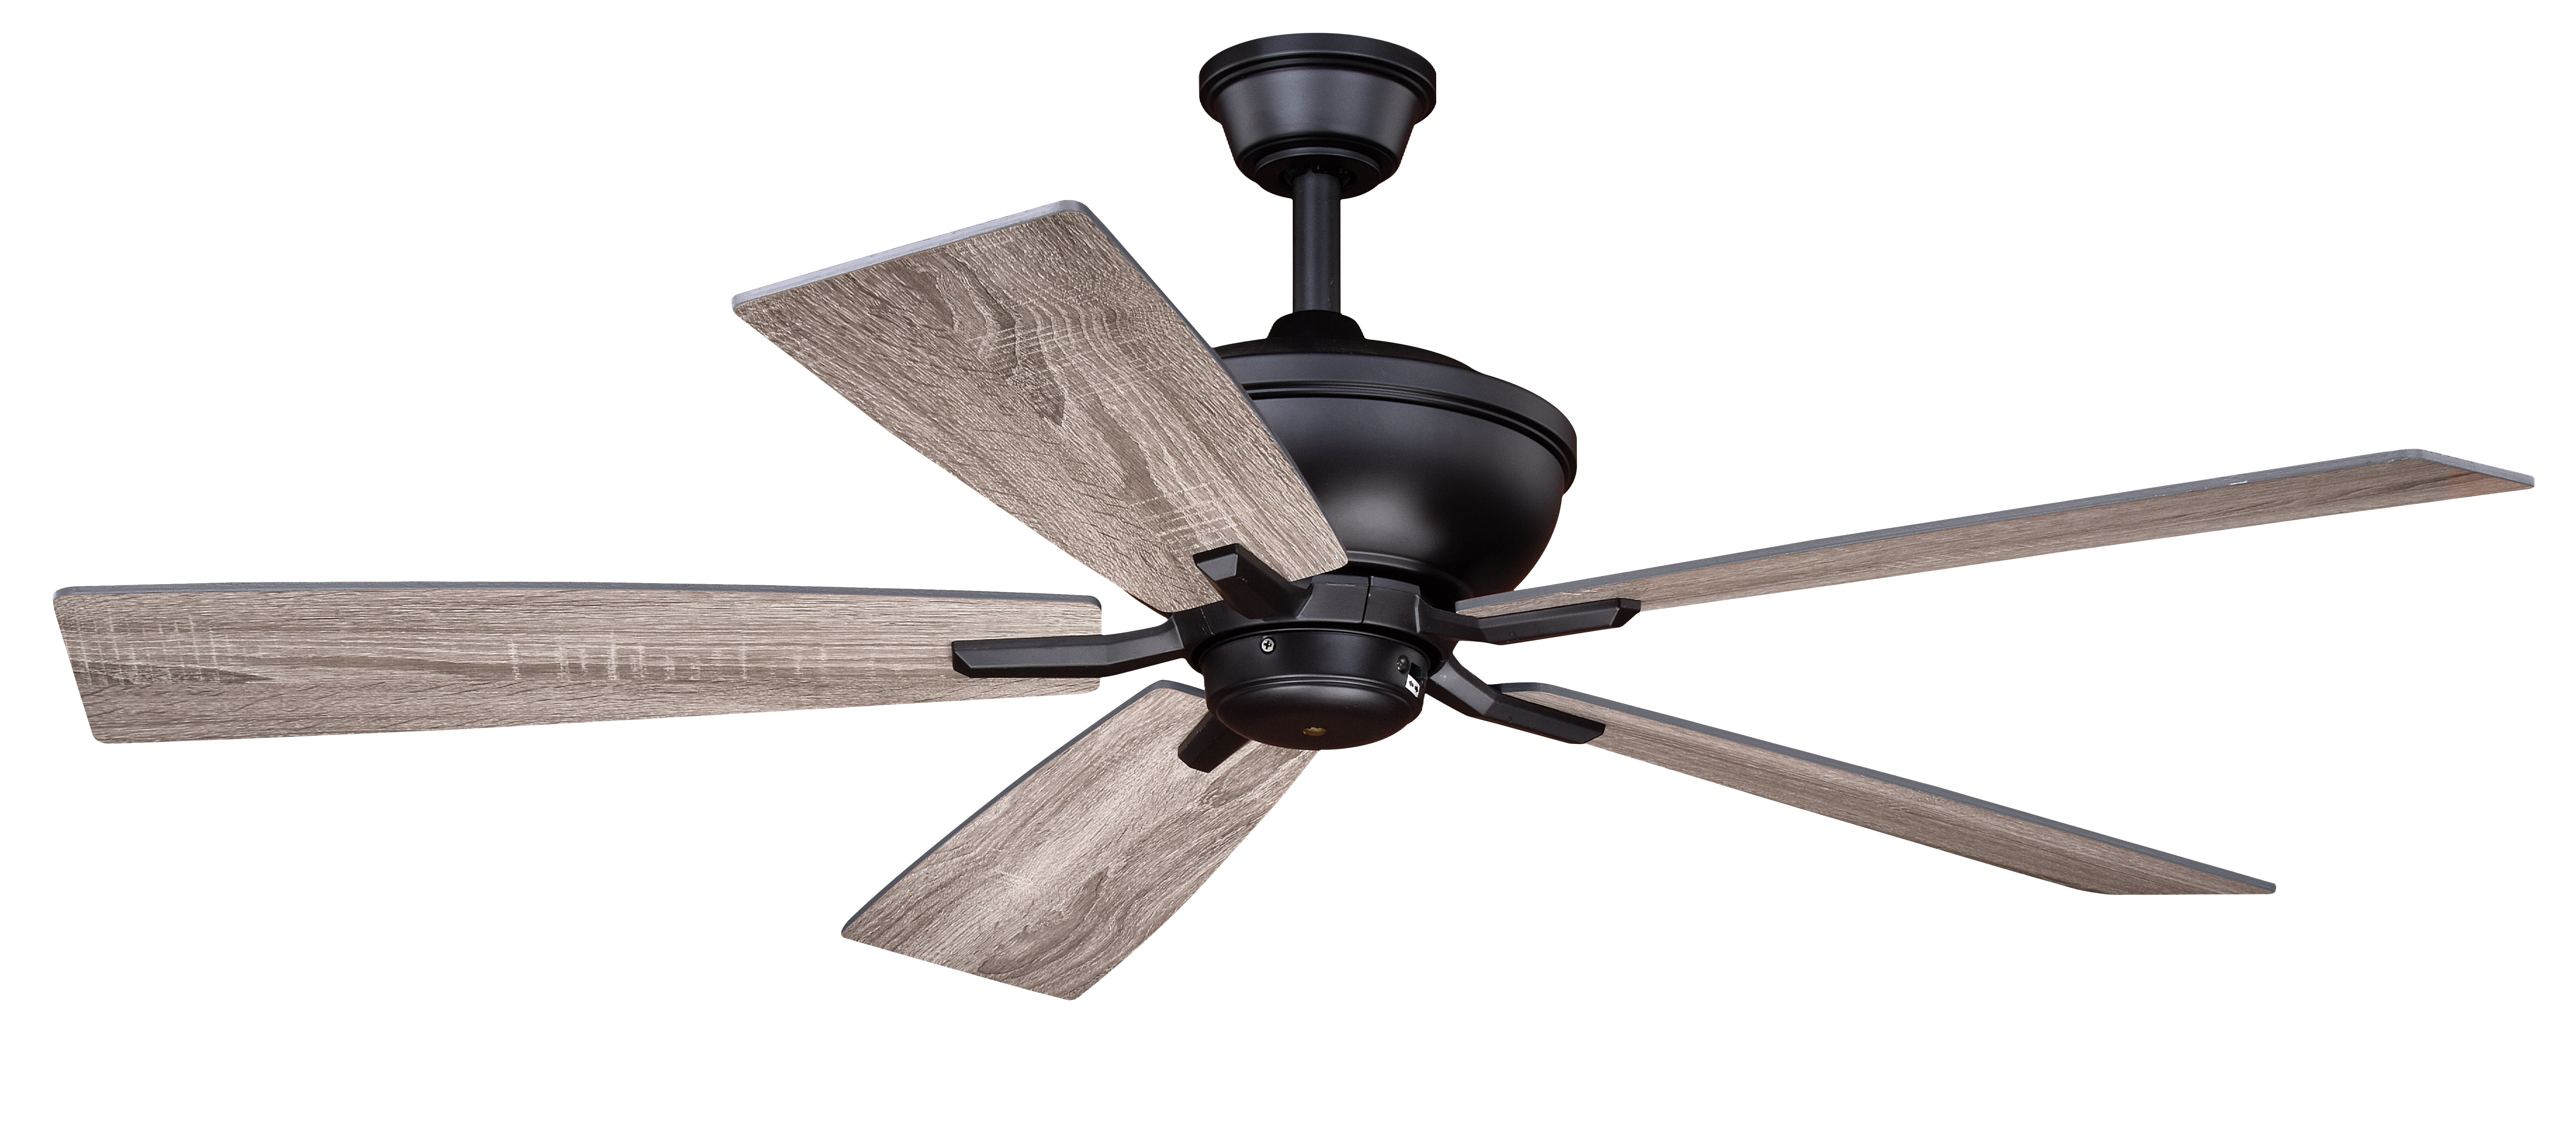 """Clybourn 5 Blade Ceiling Fans With Regard To Well Liked 52"""" Hirsch 5 Blade Ceiling Fan With Remote, Light Kit Included (View 9 of 20)"""